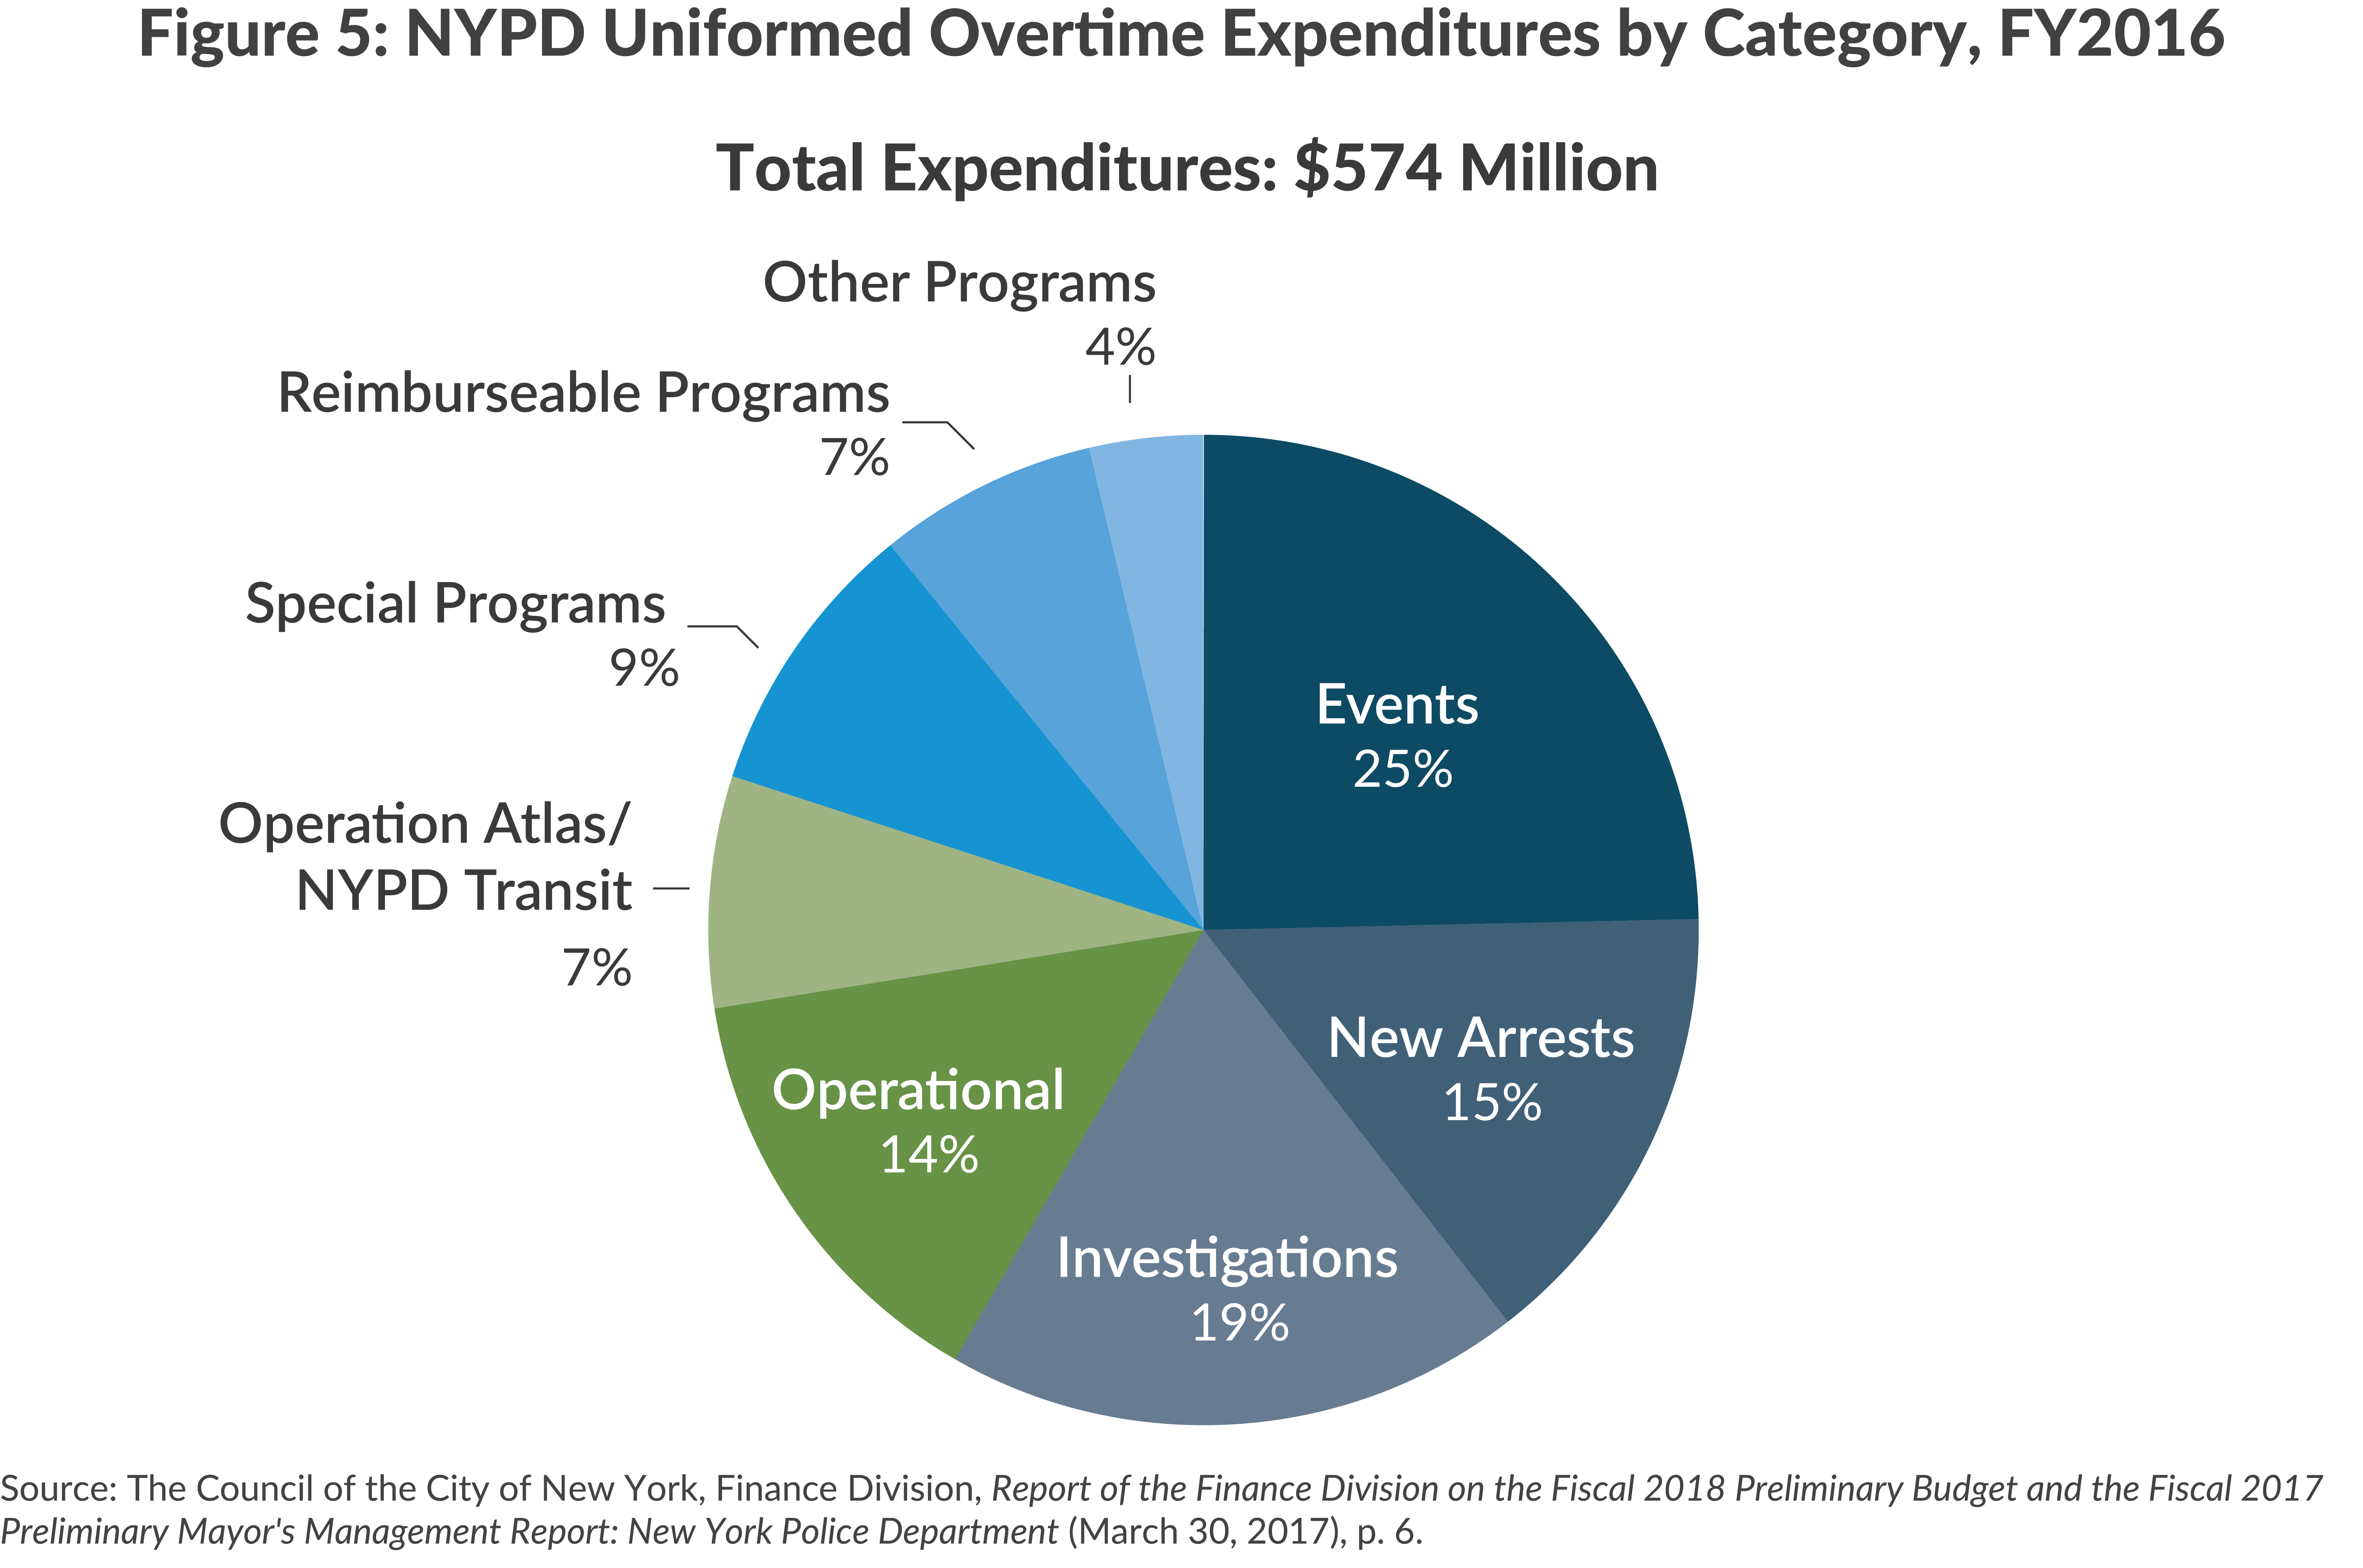 NYPD Overtime by Category, FY2016